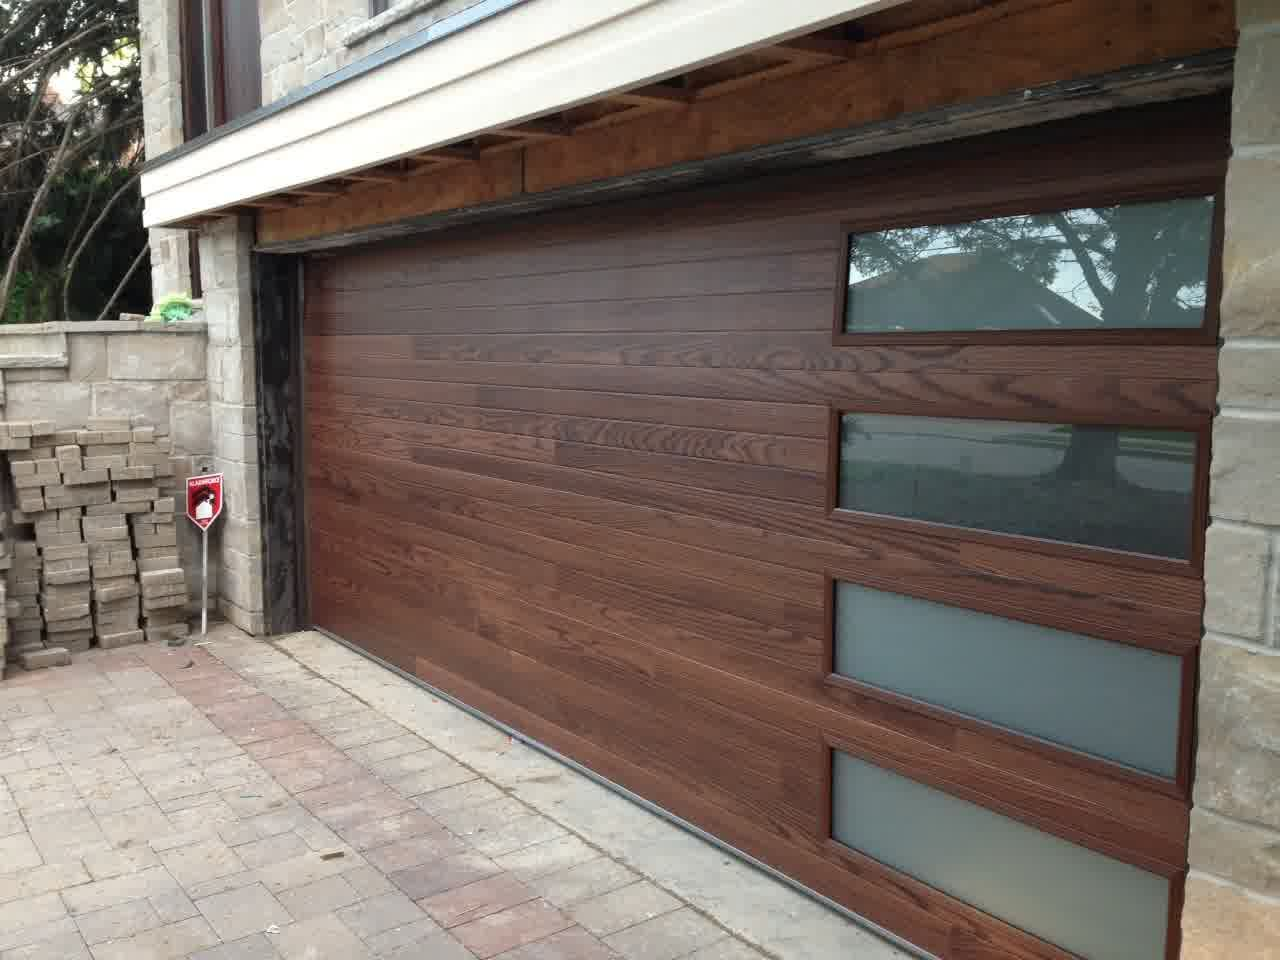 Nice Mid Century Modern Garage Doors With Wood And Glass Windows Plus Natural Brick Wall And B Contemporary Garage Doors Modern Garage Doors Garage Door Design